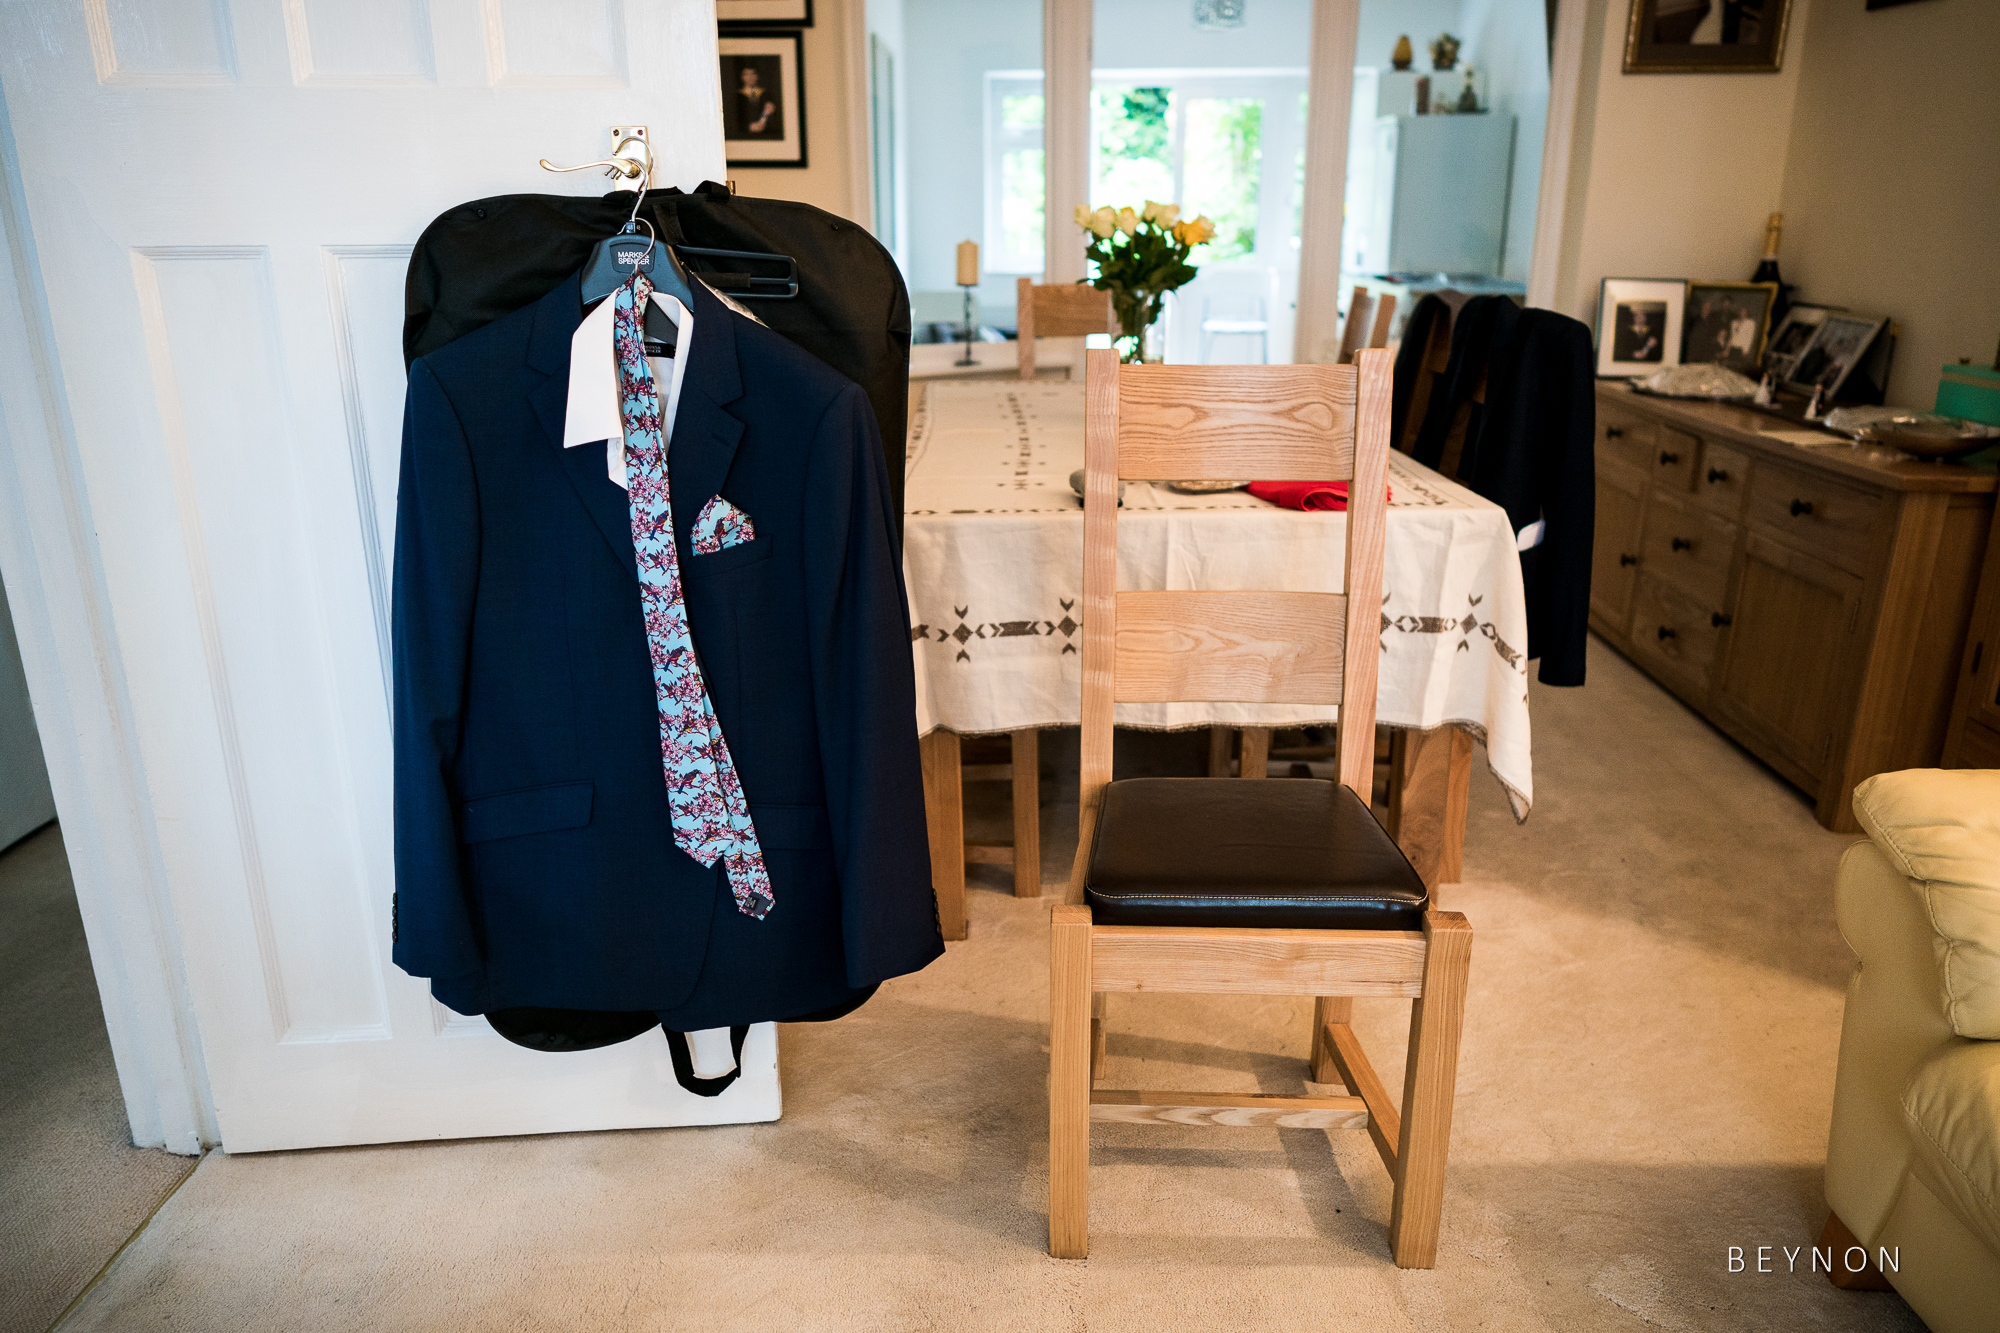 Chair and suit await the groom